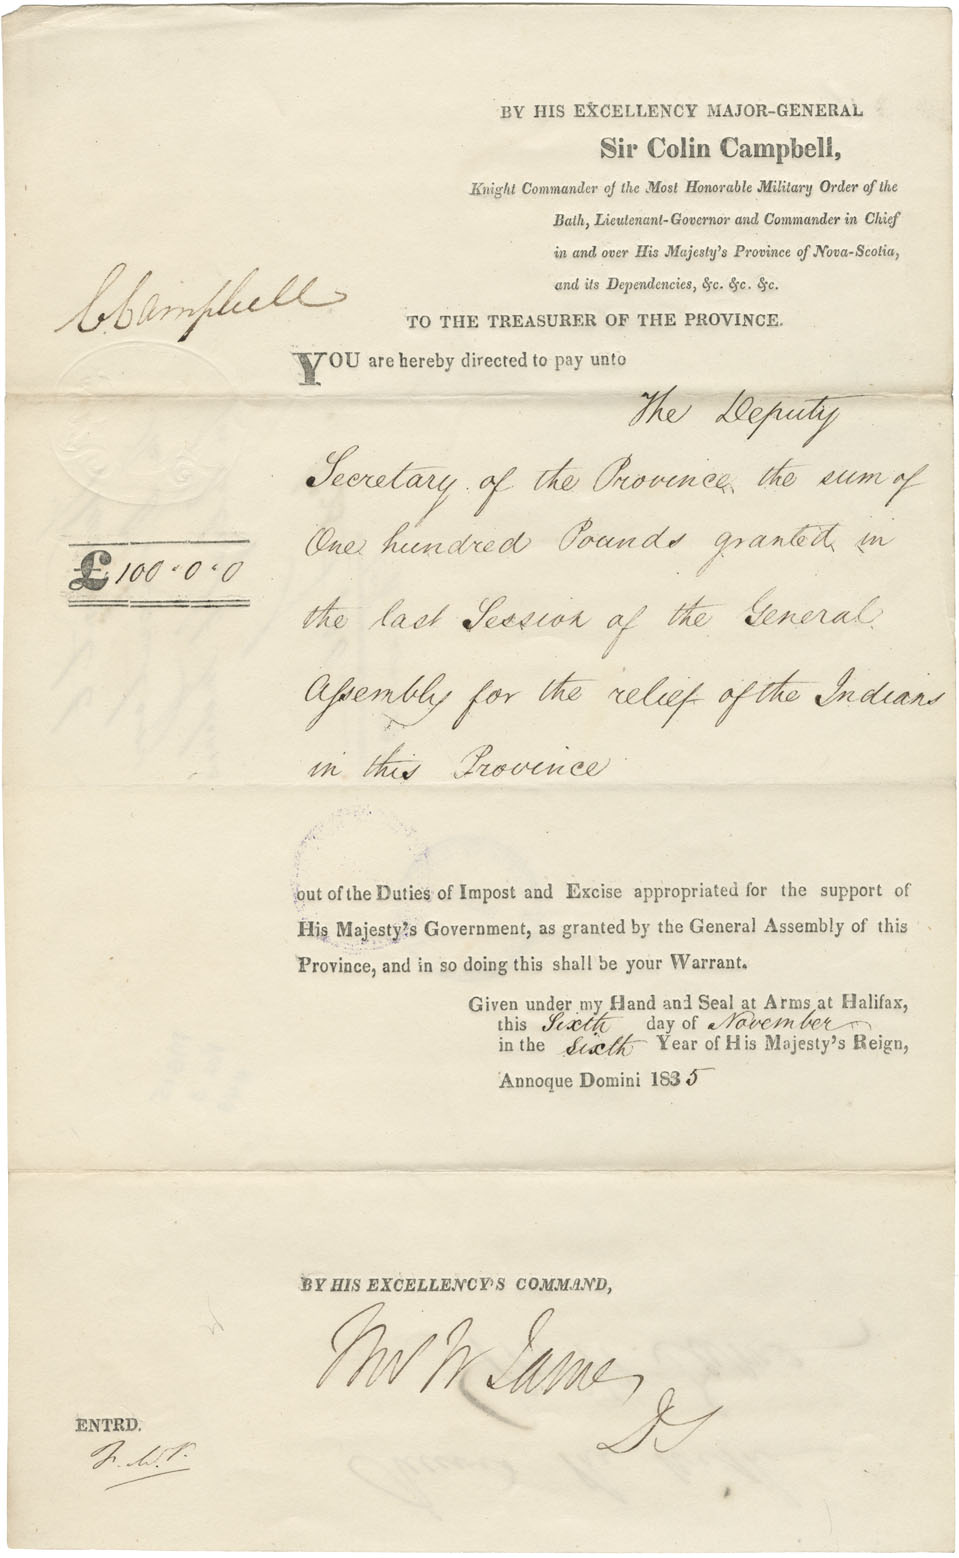 Warrant to the Deputy Secretary of the Province from Sir Colin Campbell for £100-0-0 for Mi'kmaq relief.